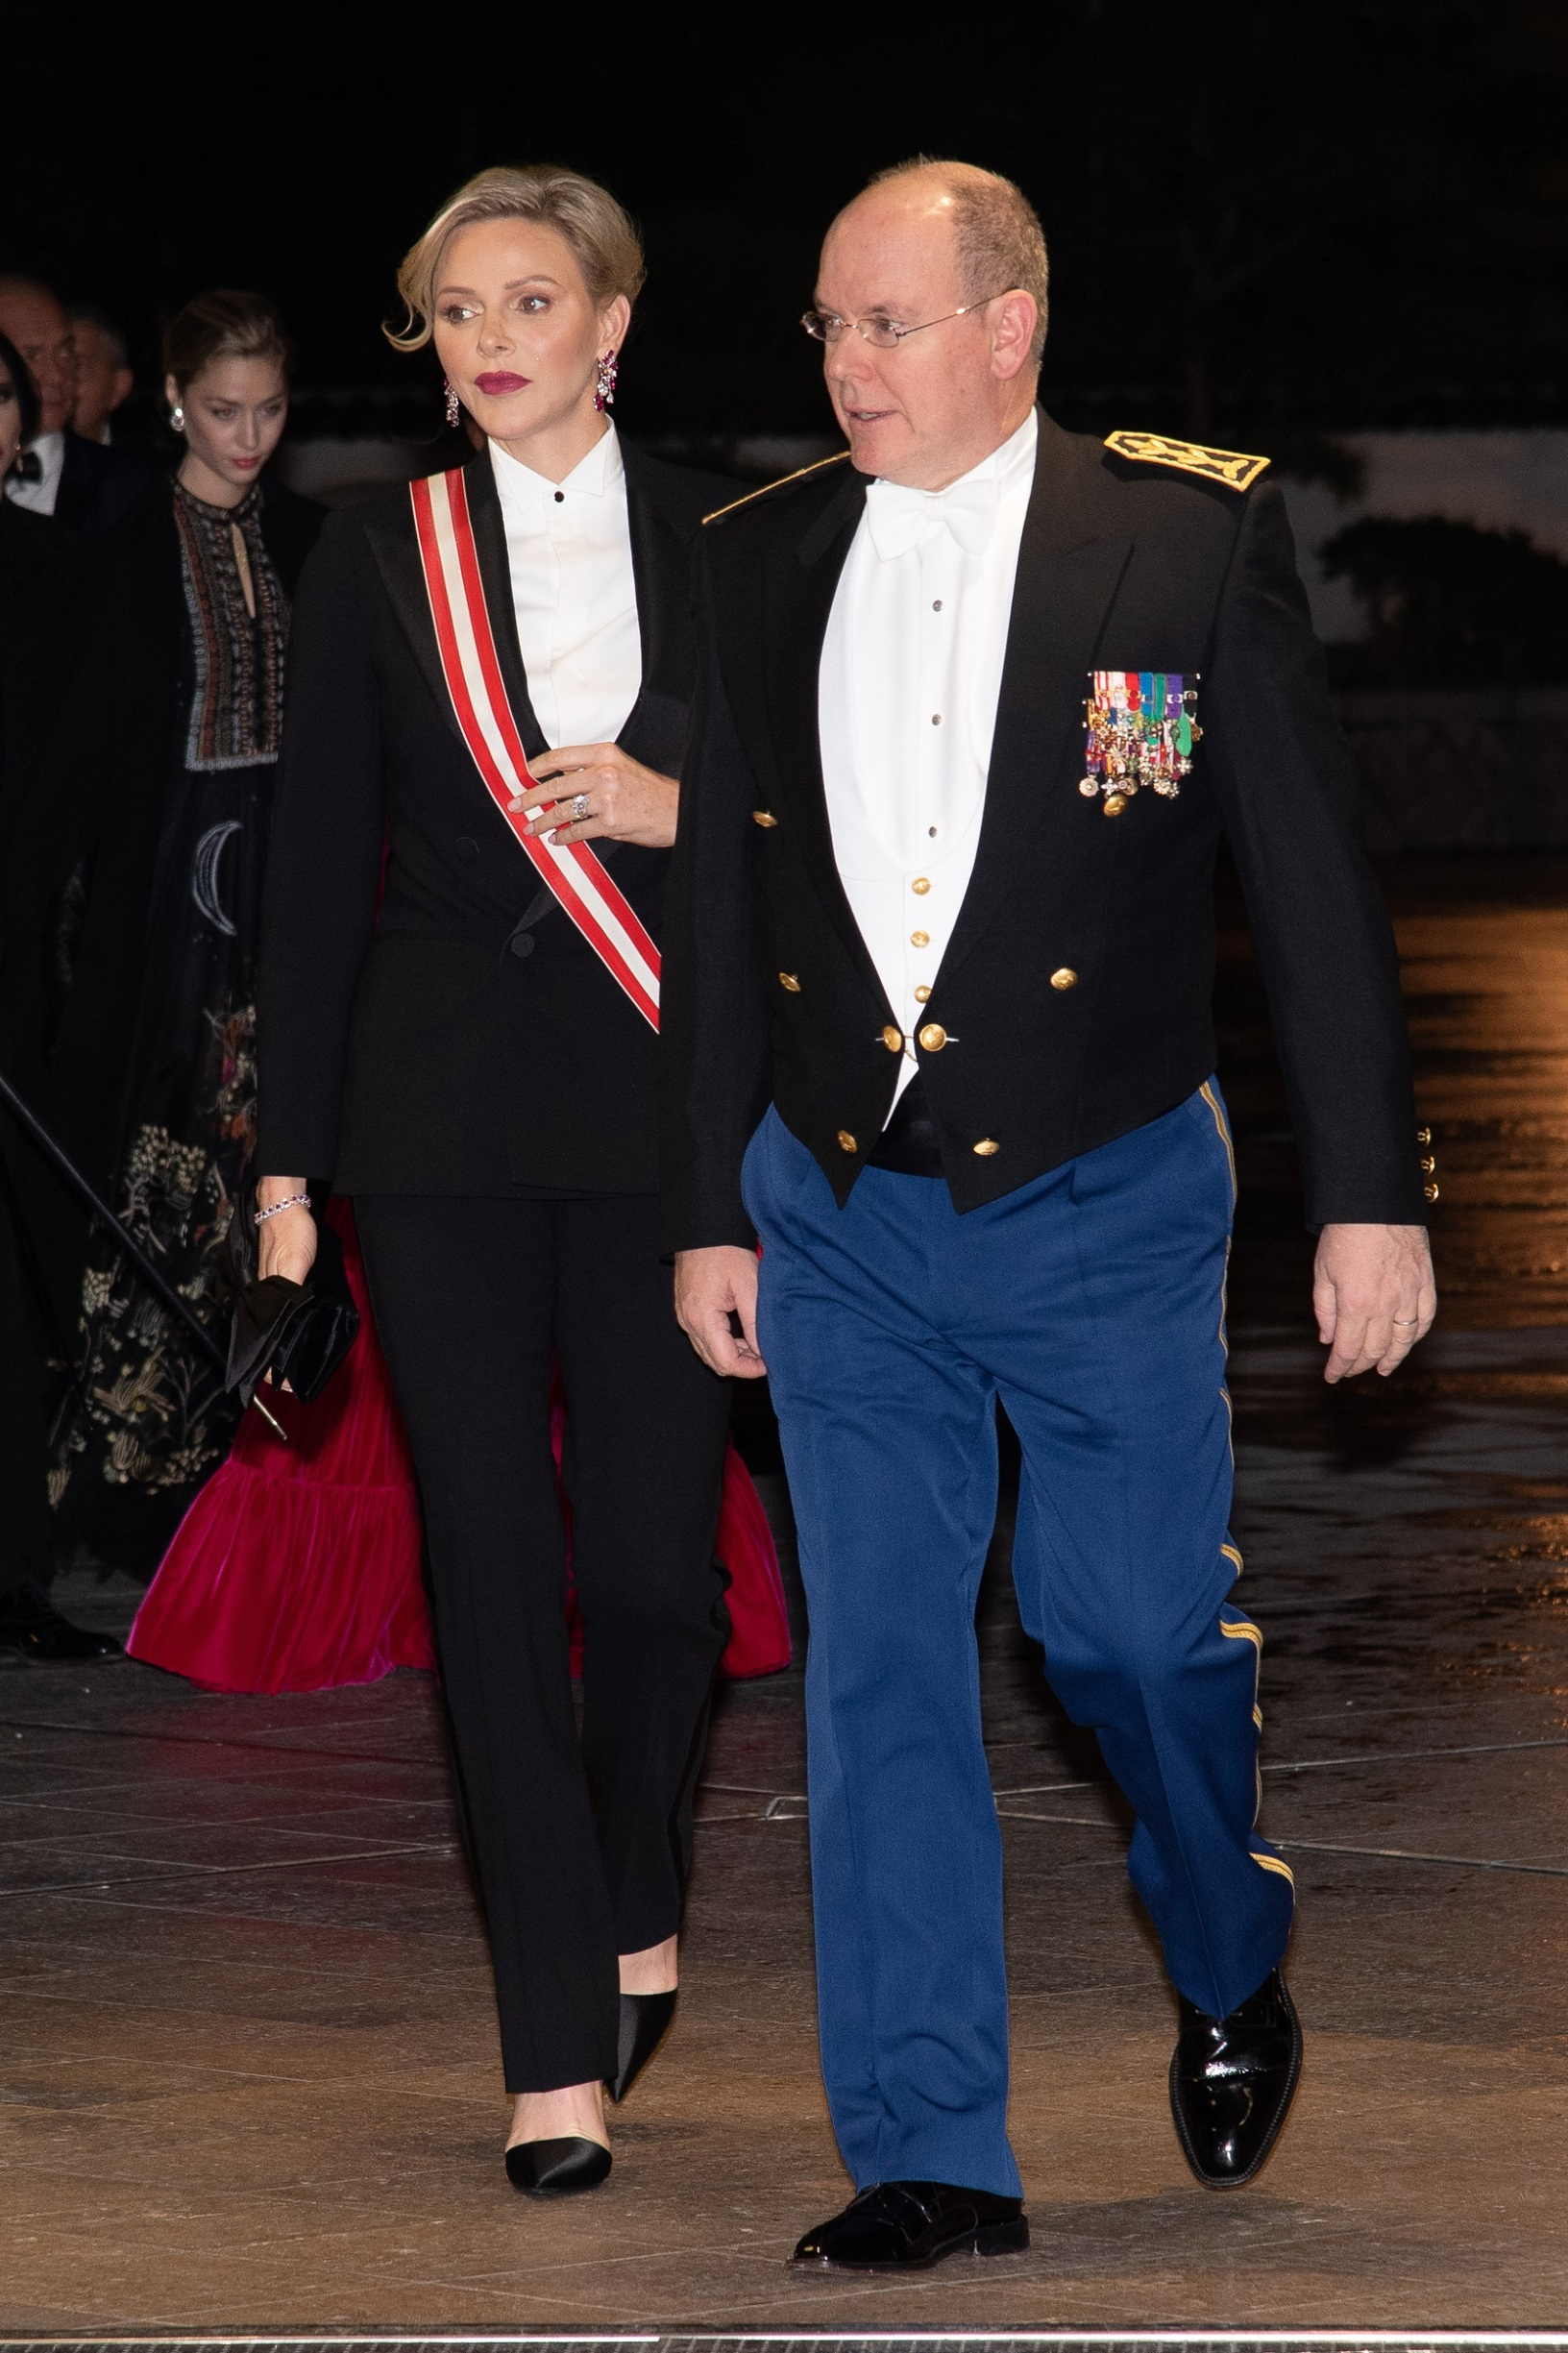 MONTE-CARLO, MONACO - NOVEMBER 19: Princess Charlene of Monaco and Prince Albert II of Monaco attend the gala at the Opera during Monaco National Day celebrations on November 19, 2019 in Monte-Carlo, Monaco. (Photo by PLS Pool/Getty Images)